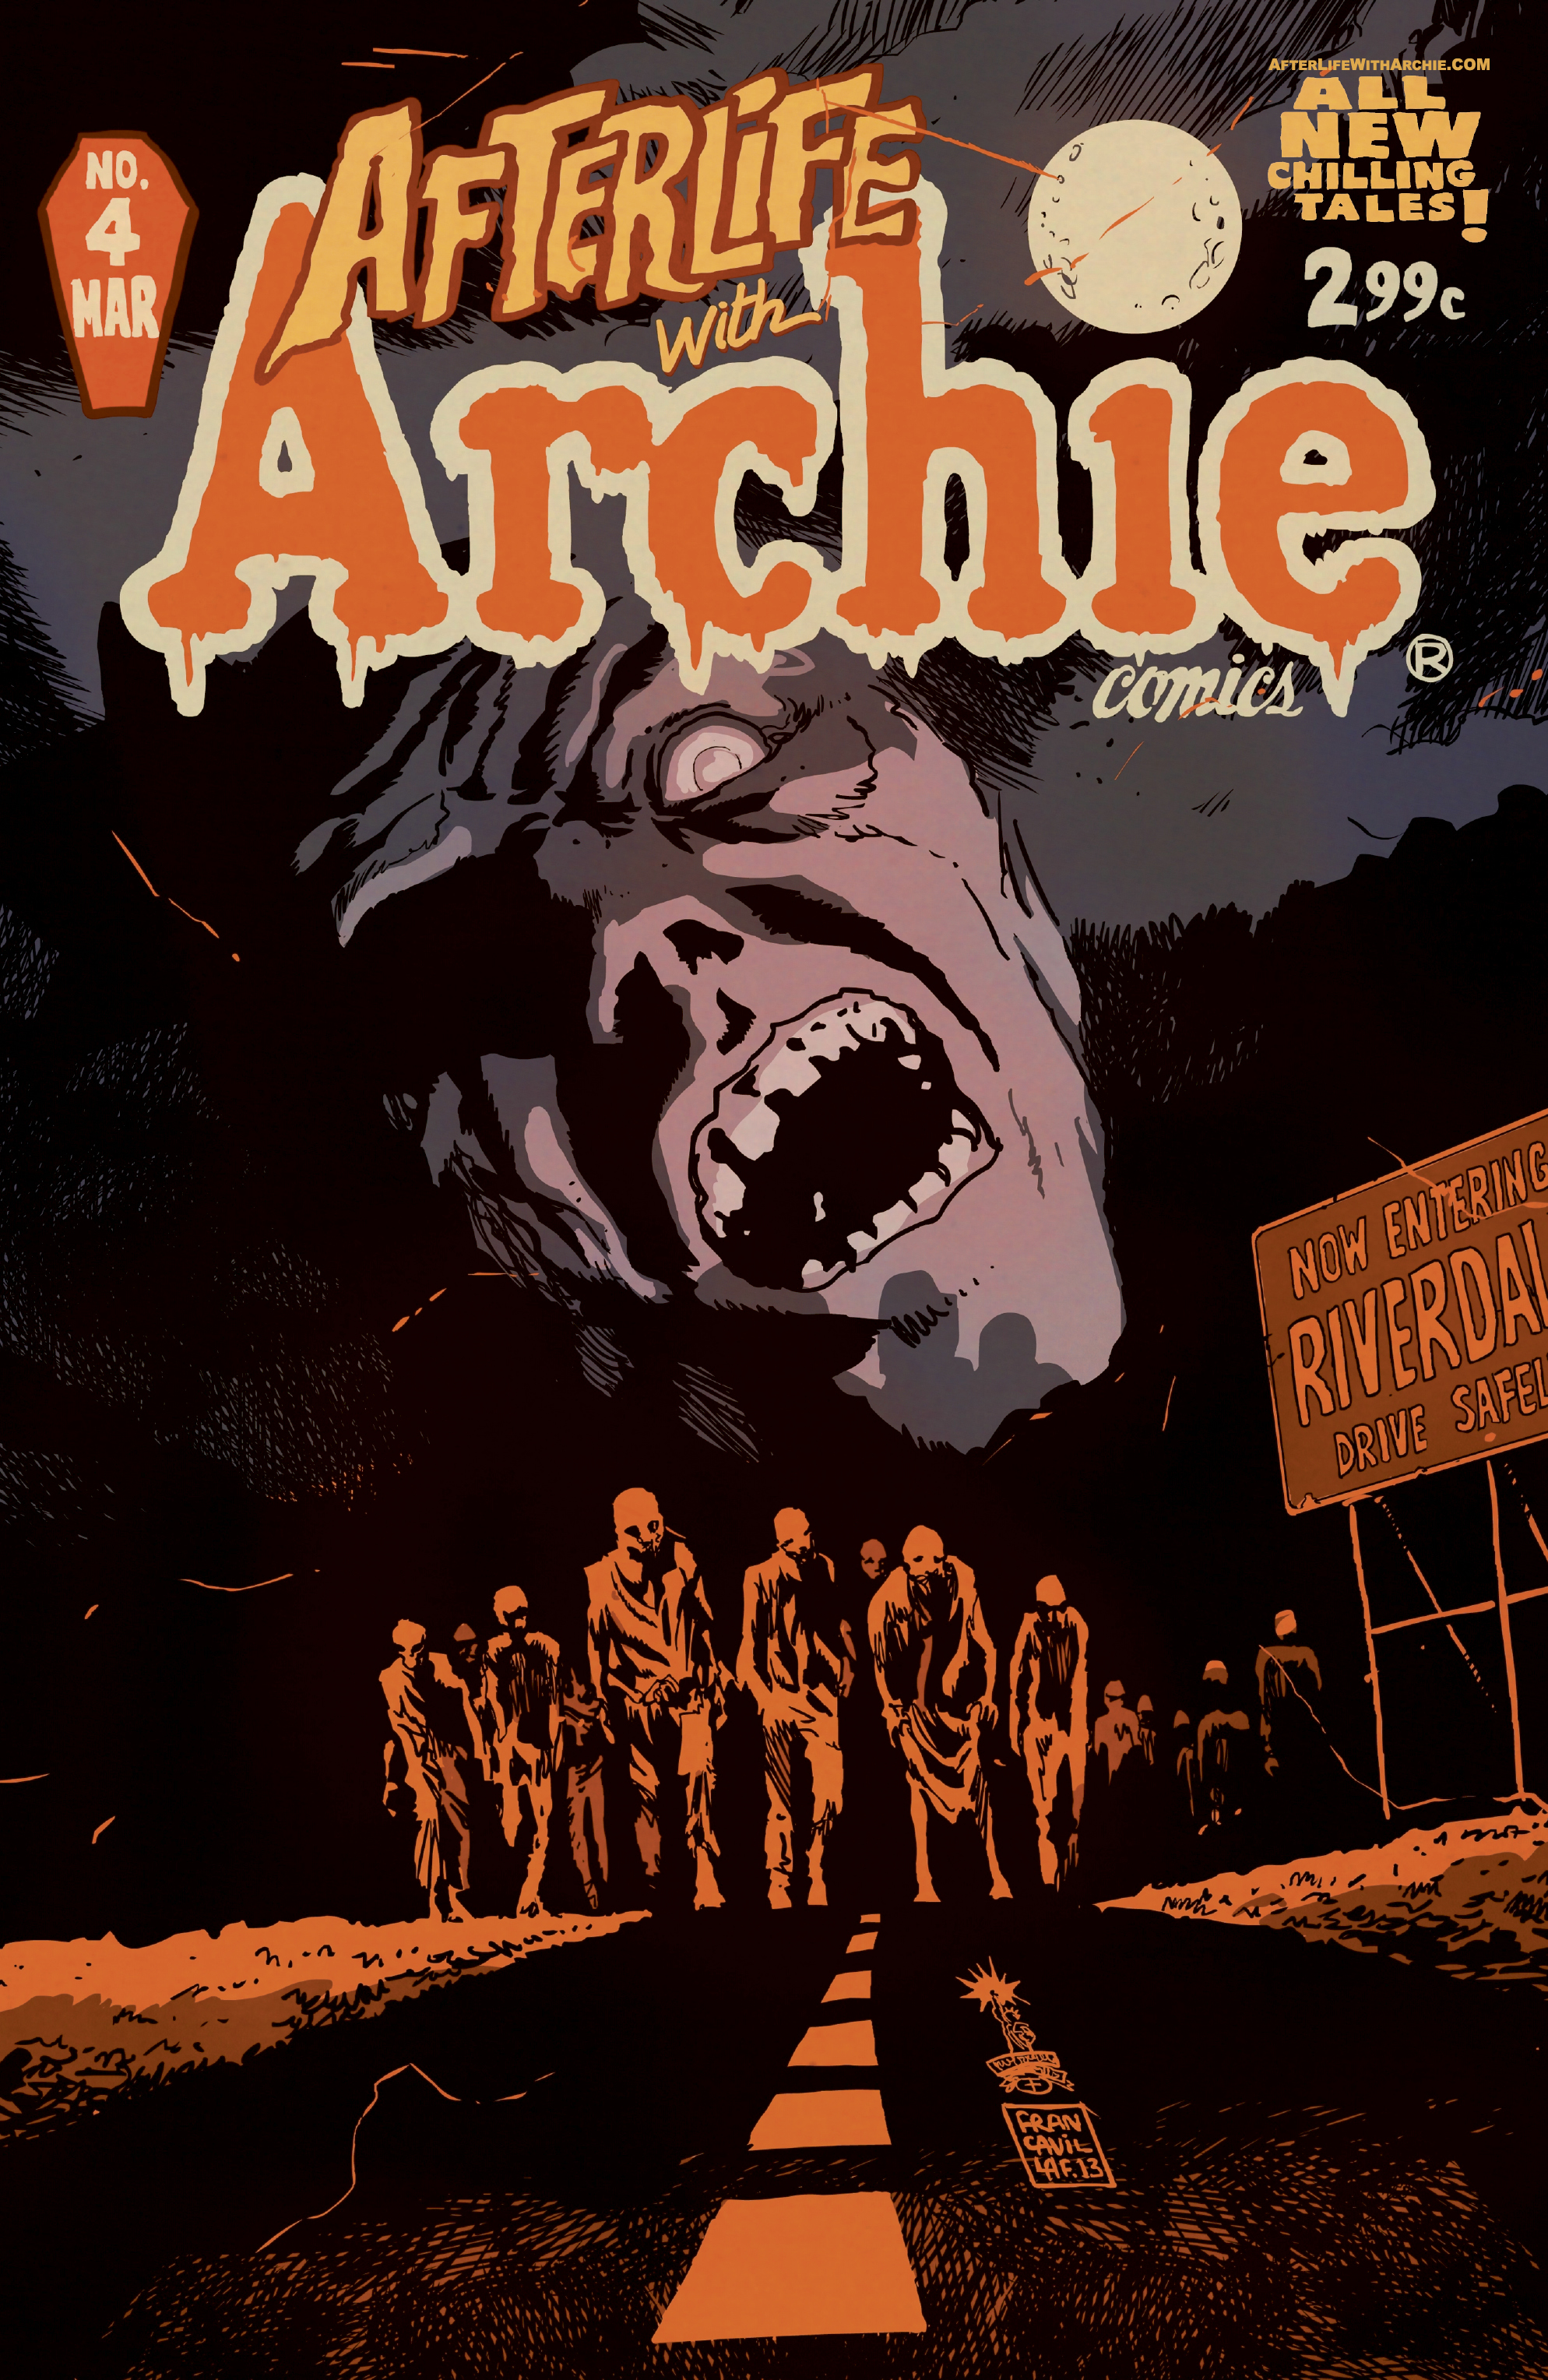 Archie comics archie comics sneak peek of the week major spoilers - Afterlife Archie_4_cover Afterlife With Archie